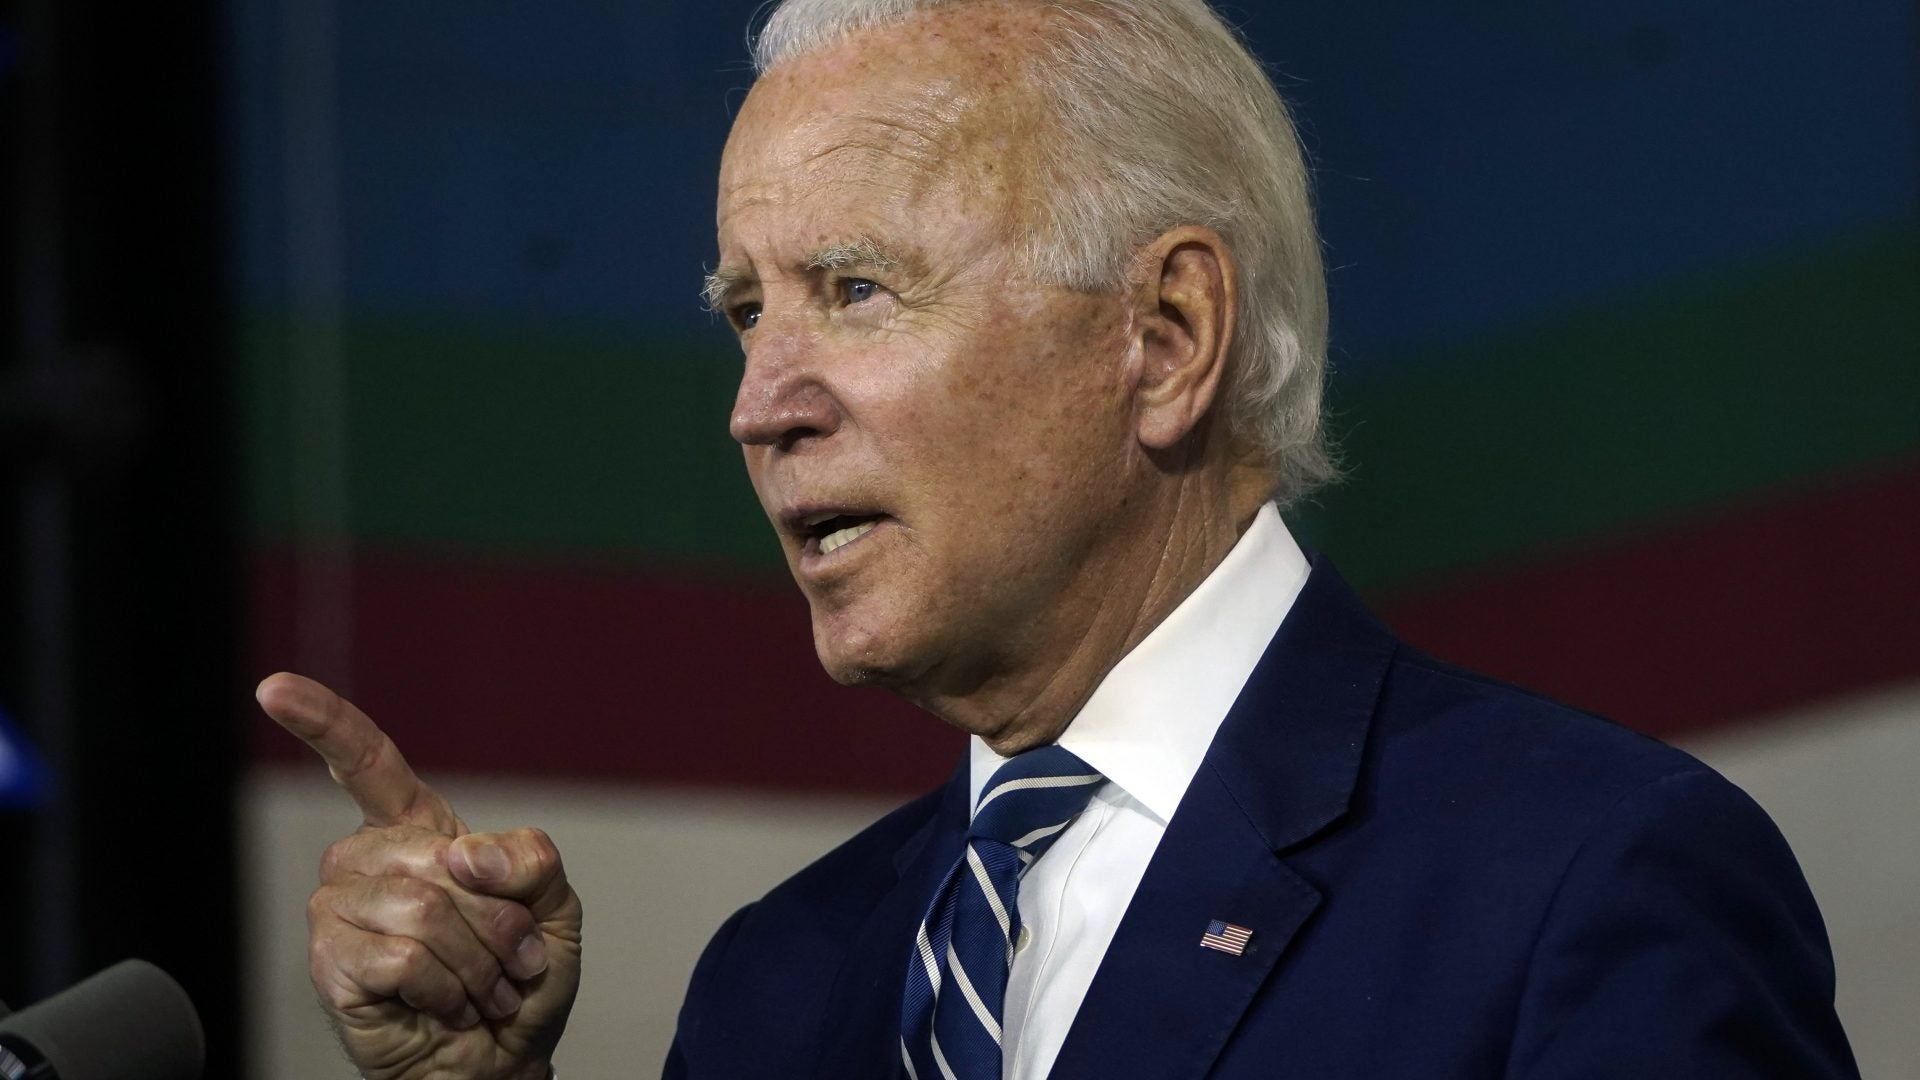 Biden Proposes Free Tuition To HBCUs, Student Debt Cancellation For Alum